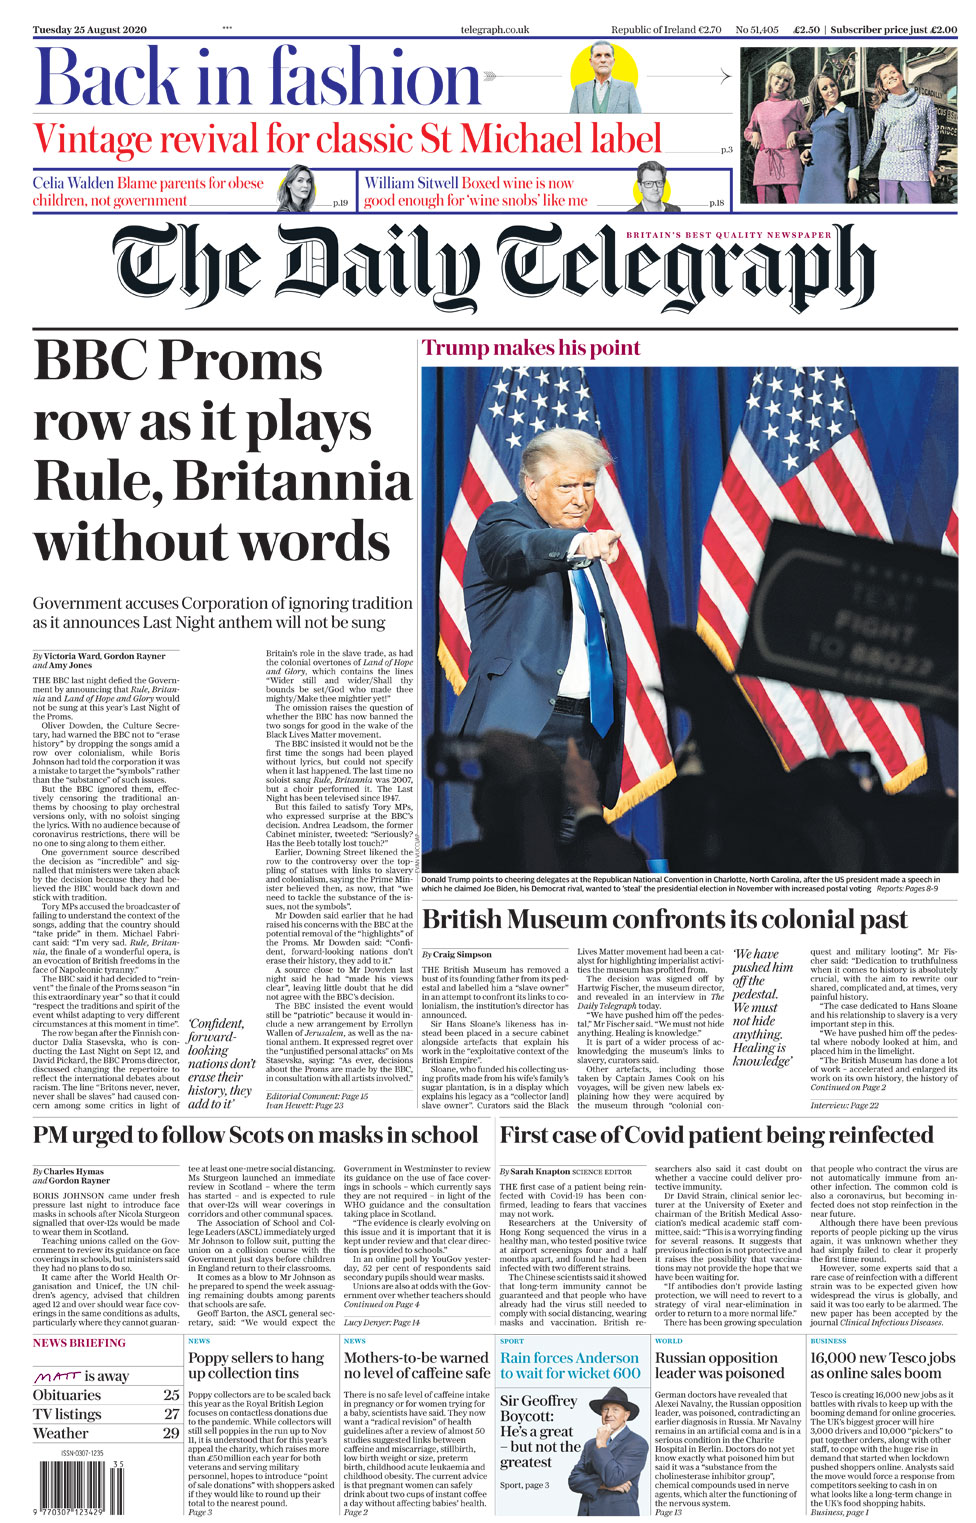 Daily Telegraph front page